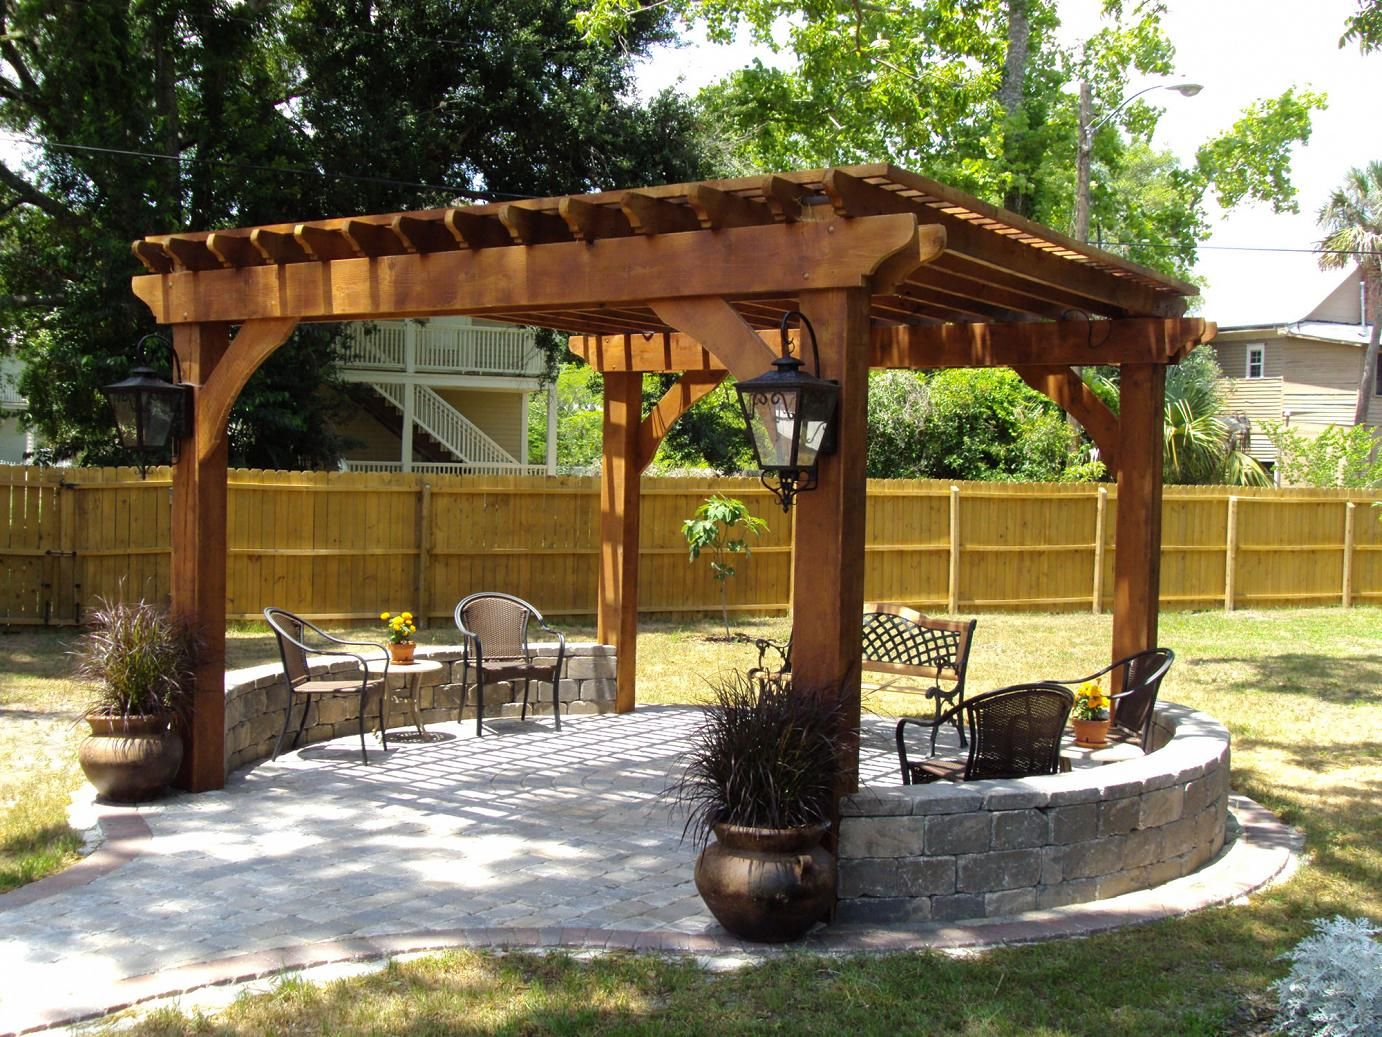 Outdoor Pergolas-Laredo TX Landscape Designs & Outdoor Living Areas-We offer Landscape Design, Outdoor Patios & Pergolas, Outdoor Living Spaces, Stonescapes, Residential & Commercial Landscaping, Irrigation Installation & Repairs, Drainage Systems, Landscape Lighting, Outdoor Living Spaces, Tree Service, Lawn Service, and more.